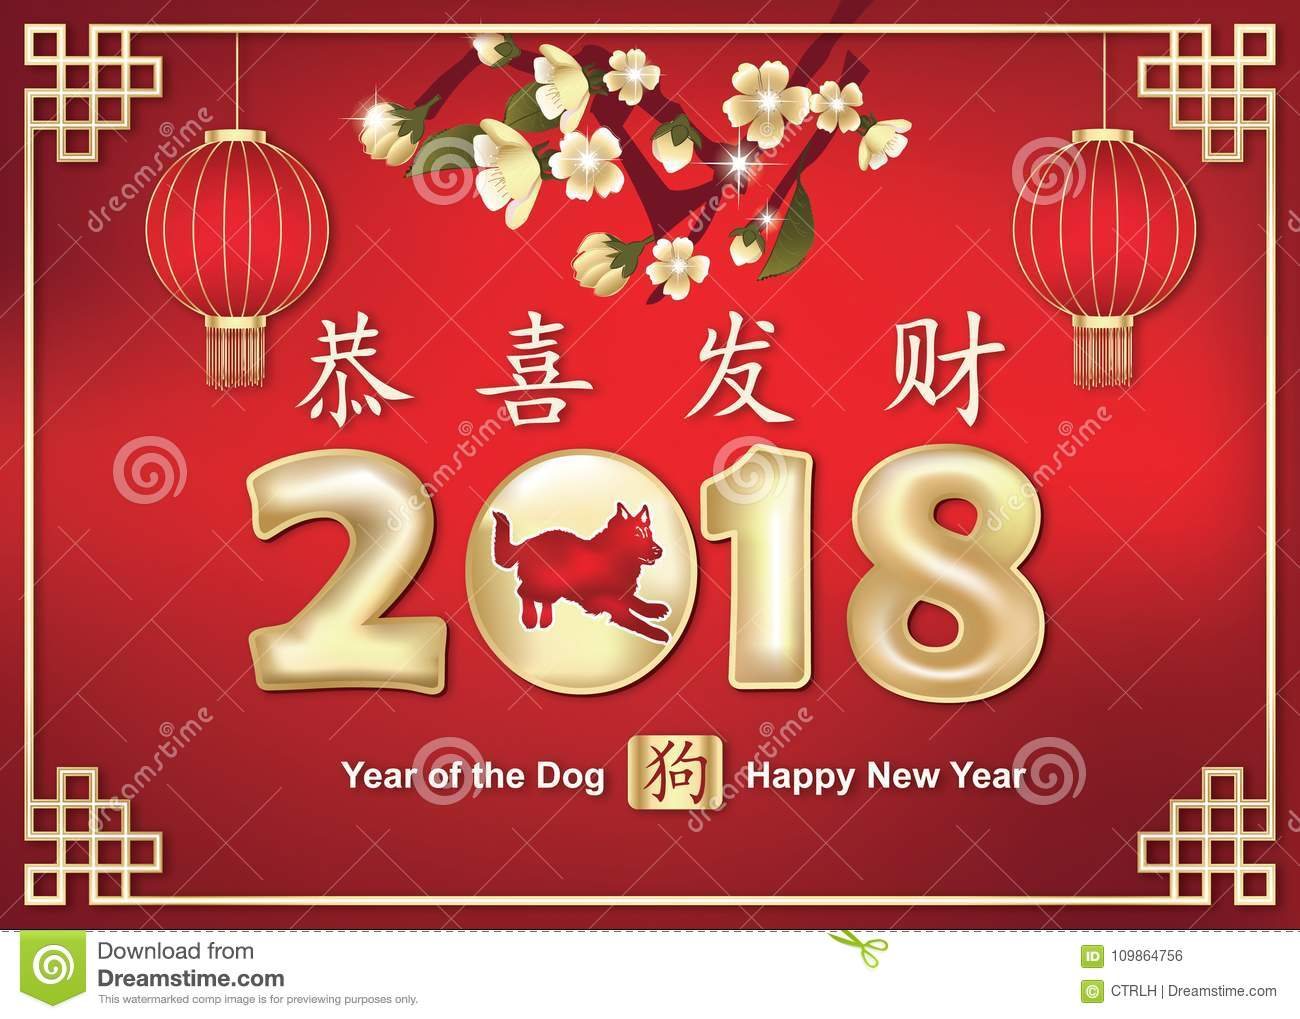 simple printable greeting card for chinese new year of the dog central glyph meaning good luck wealth and prosperity ideograms translation year of the